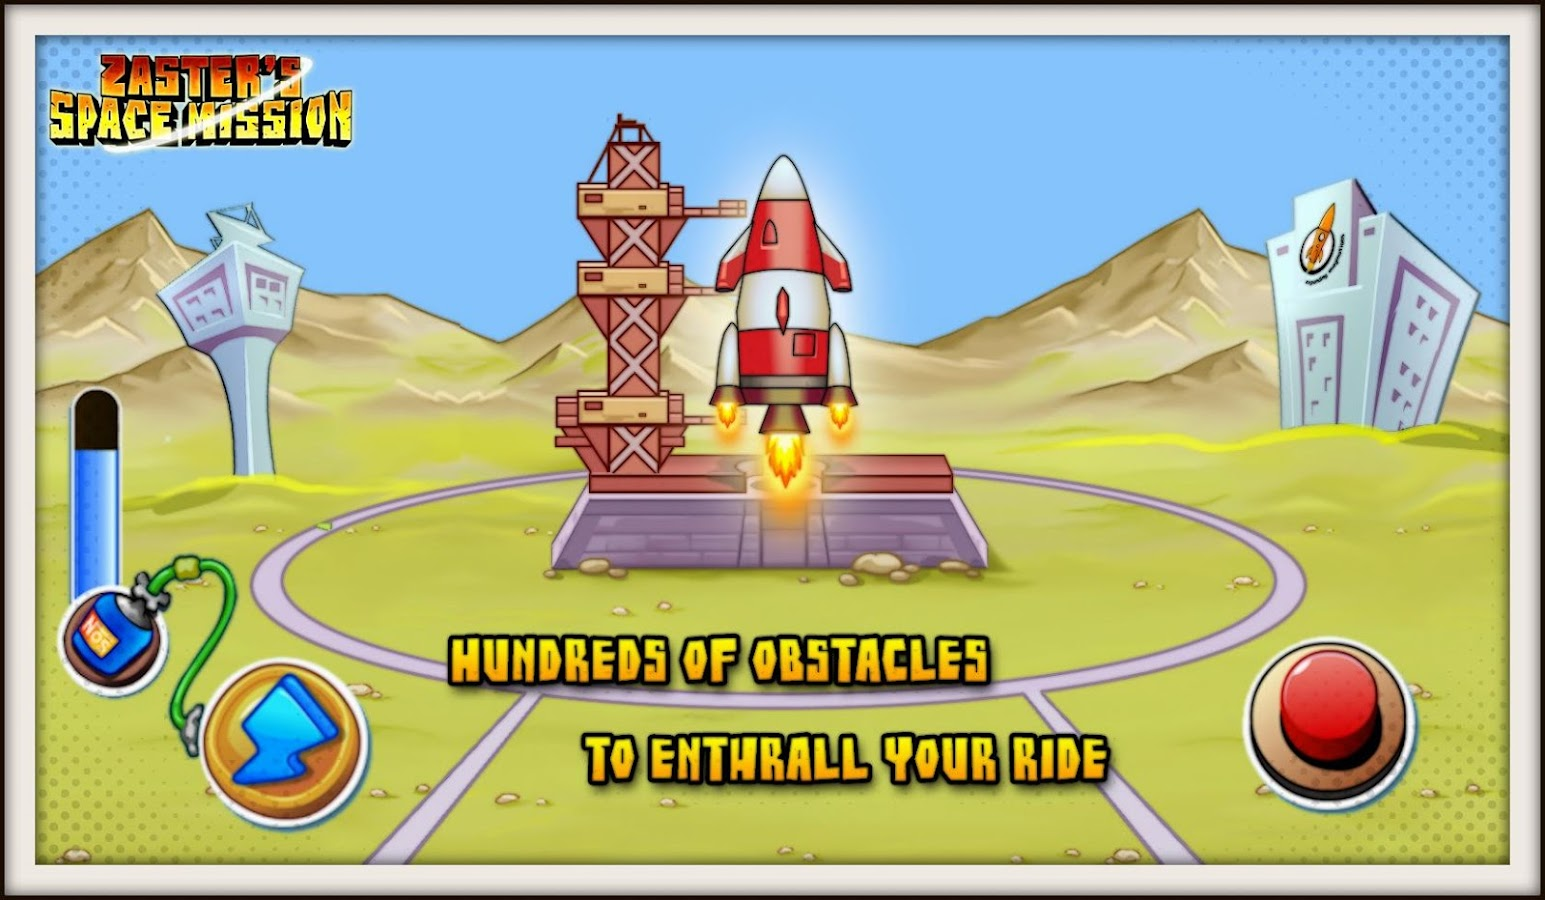 space mission rocket launch screenshot